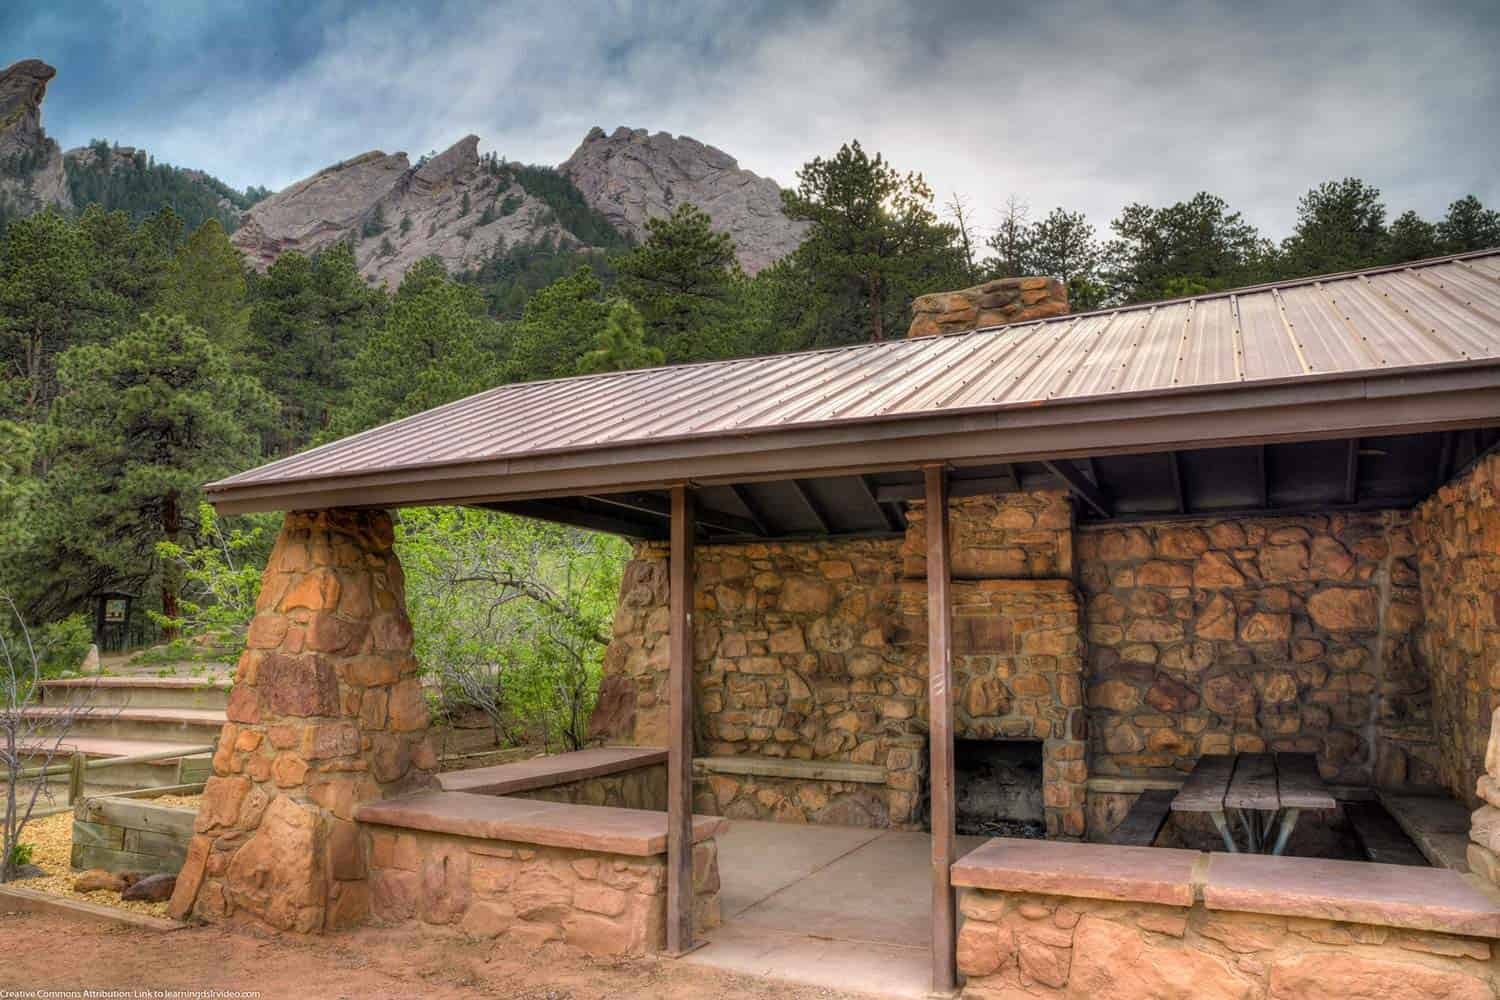 shelter along the bluebell road trail in chautauqua park boulder with flatirons in background